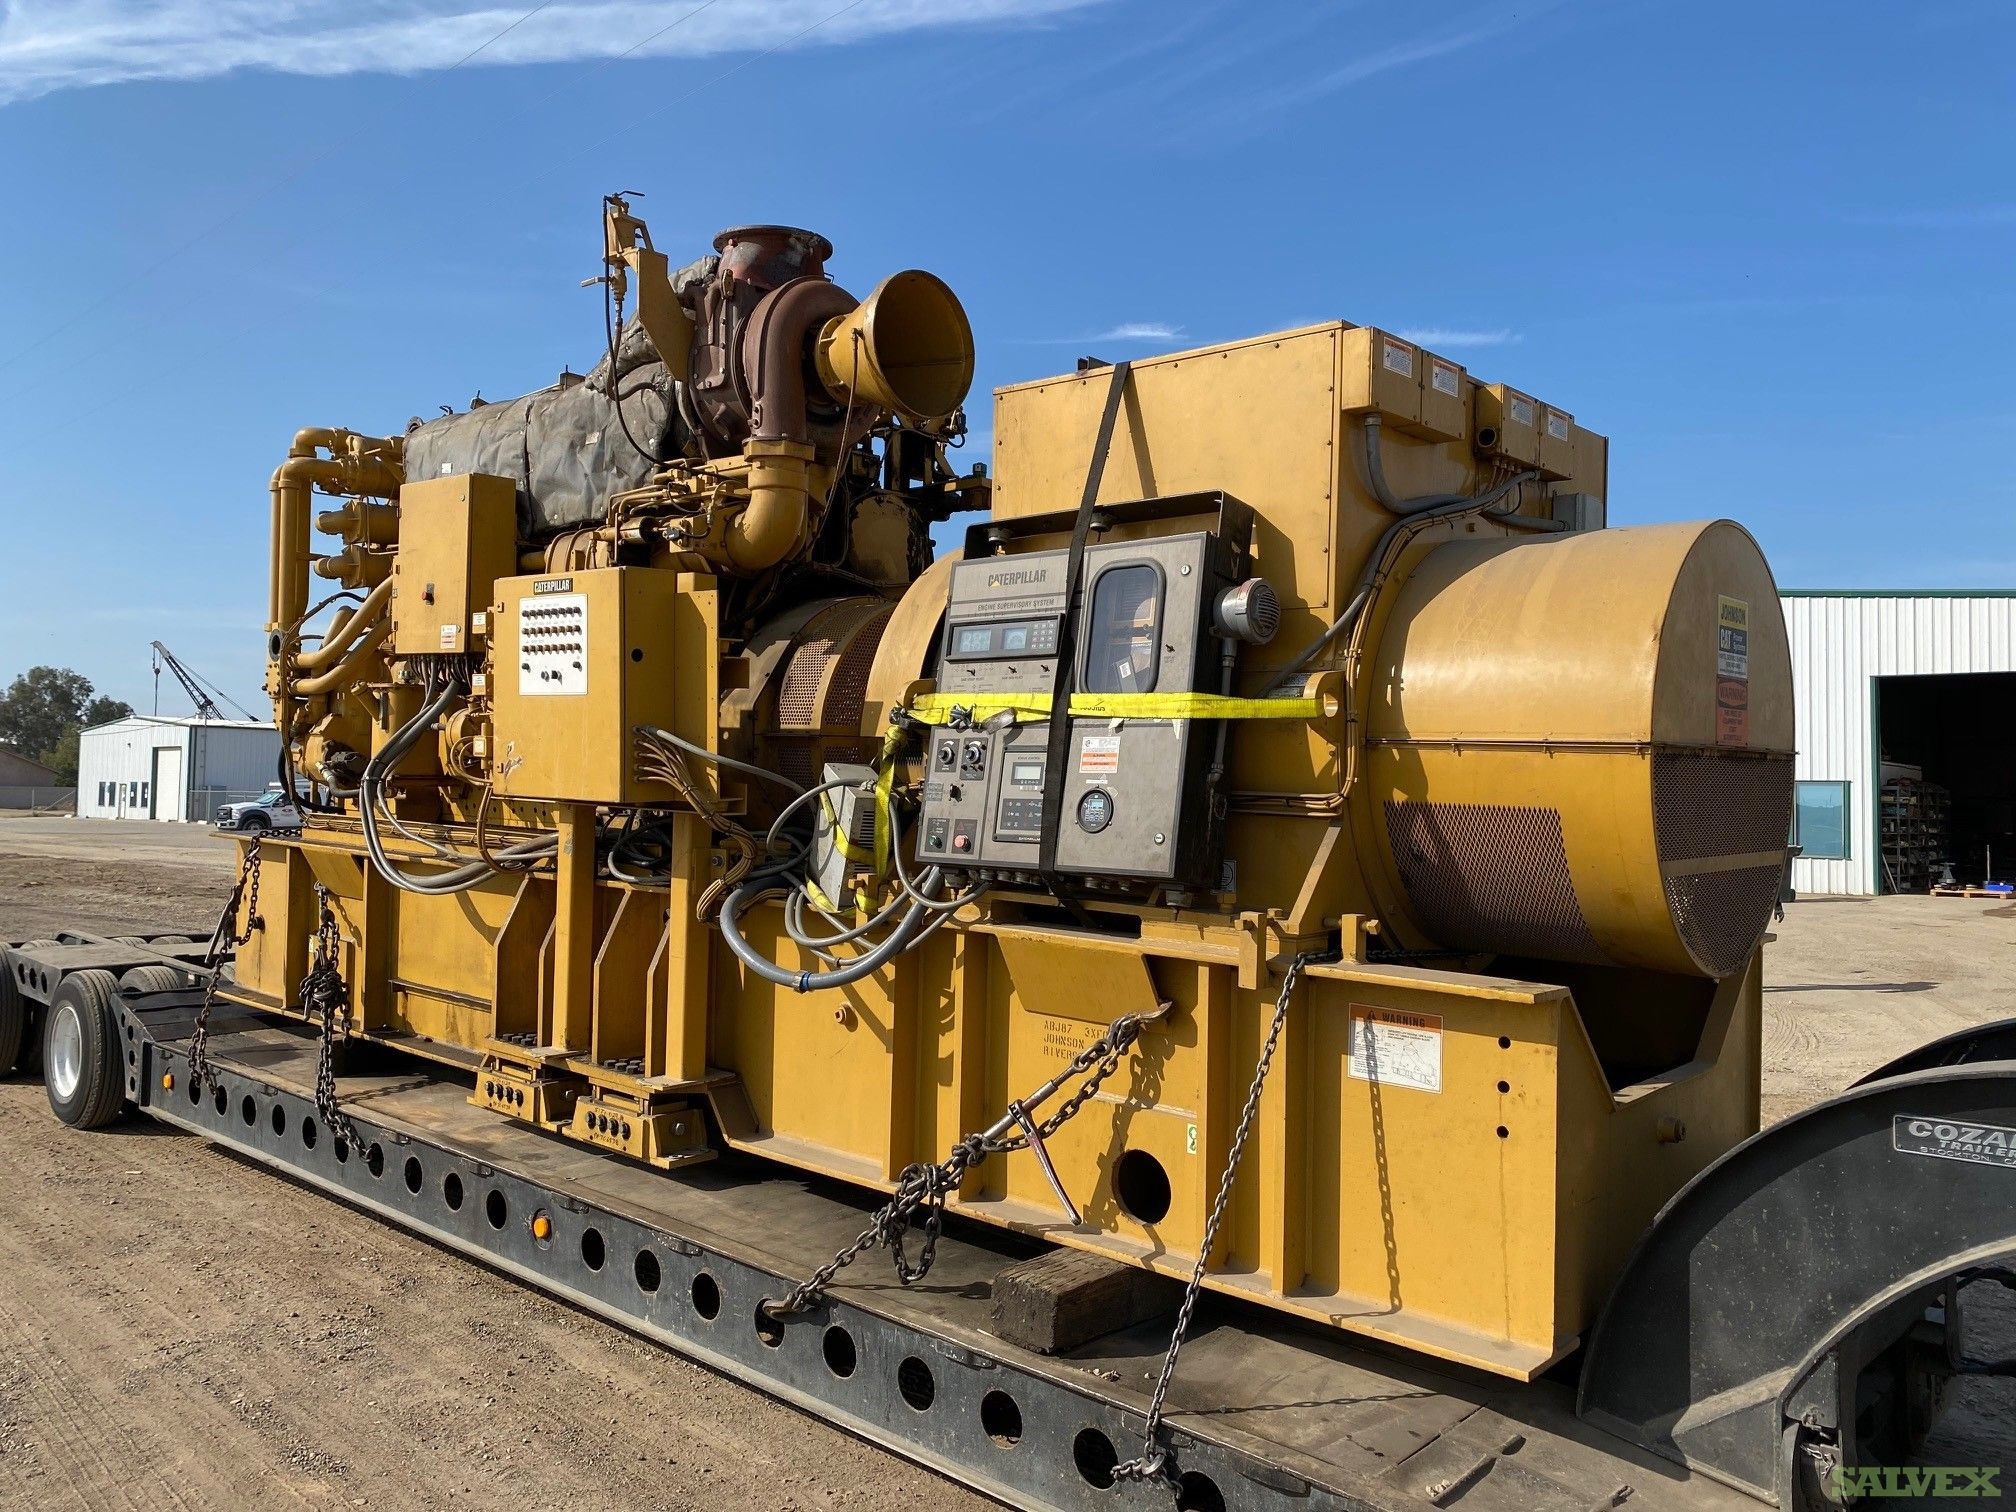 Natural Gas Cat Engine Generator Sets Model G3606TA/Kato 1.135 KW, 900 RPM 2400/ 4160 Volts 60 Hz